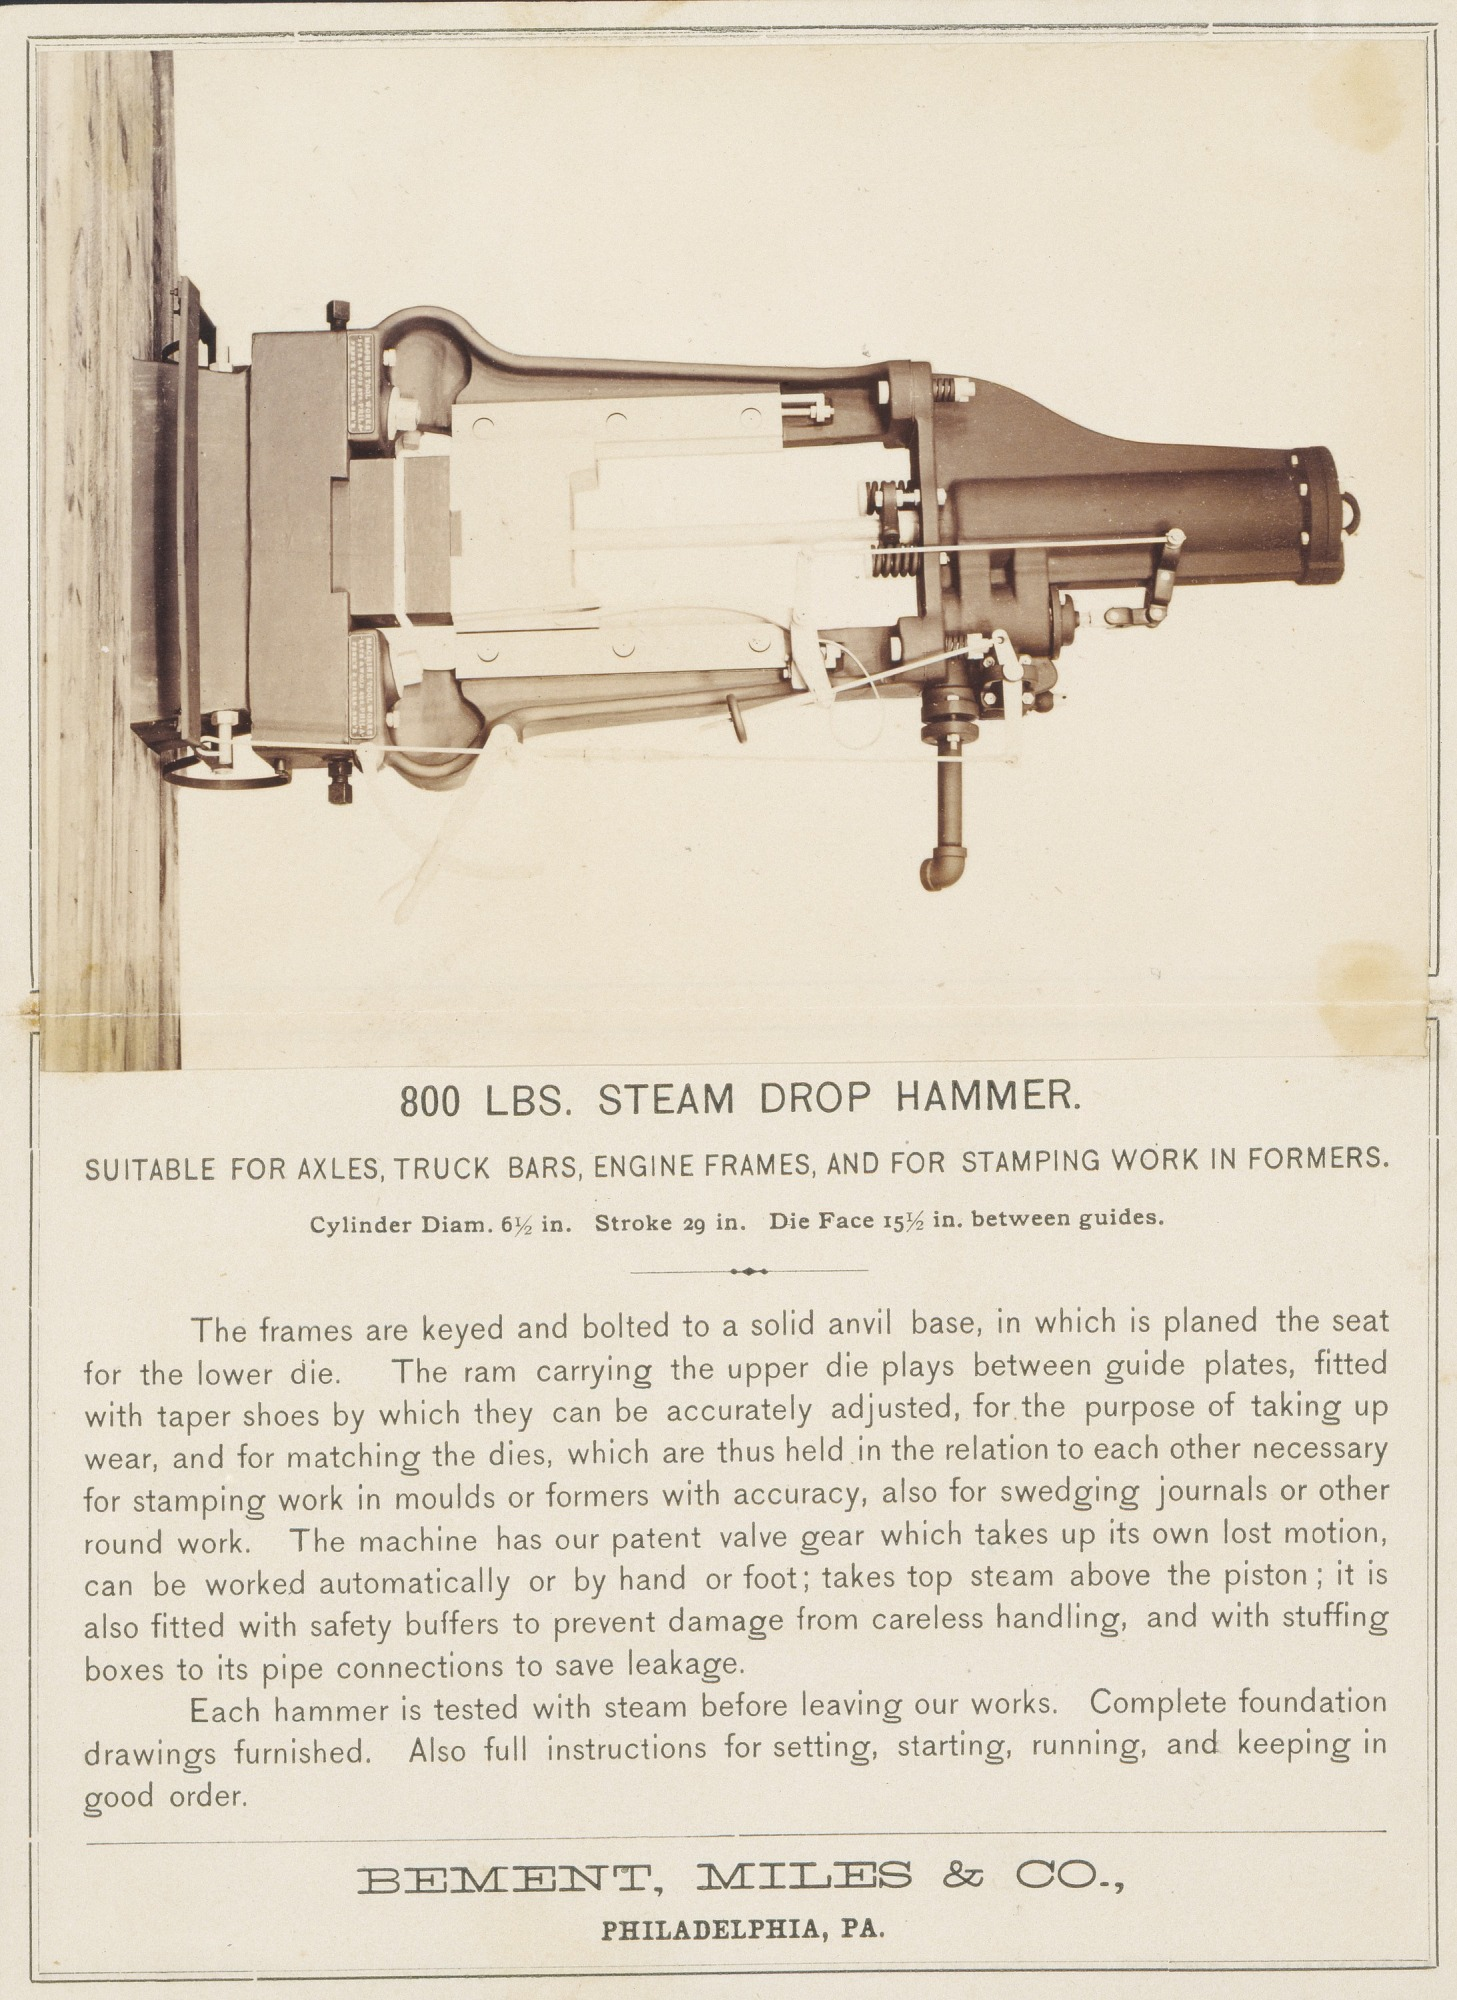 [Steam Drop Hammer, Bement, Miles and Company, Philadelphia]